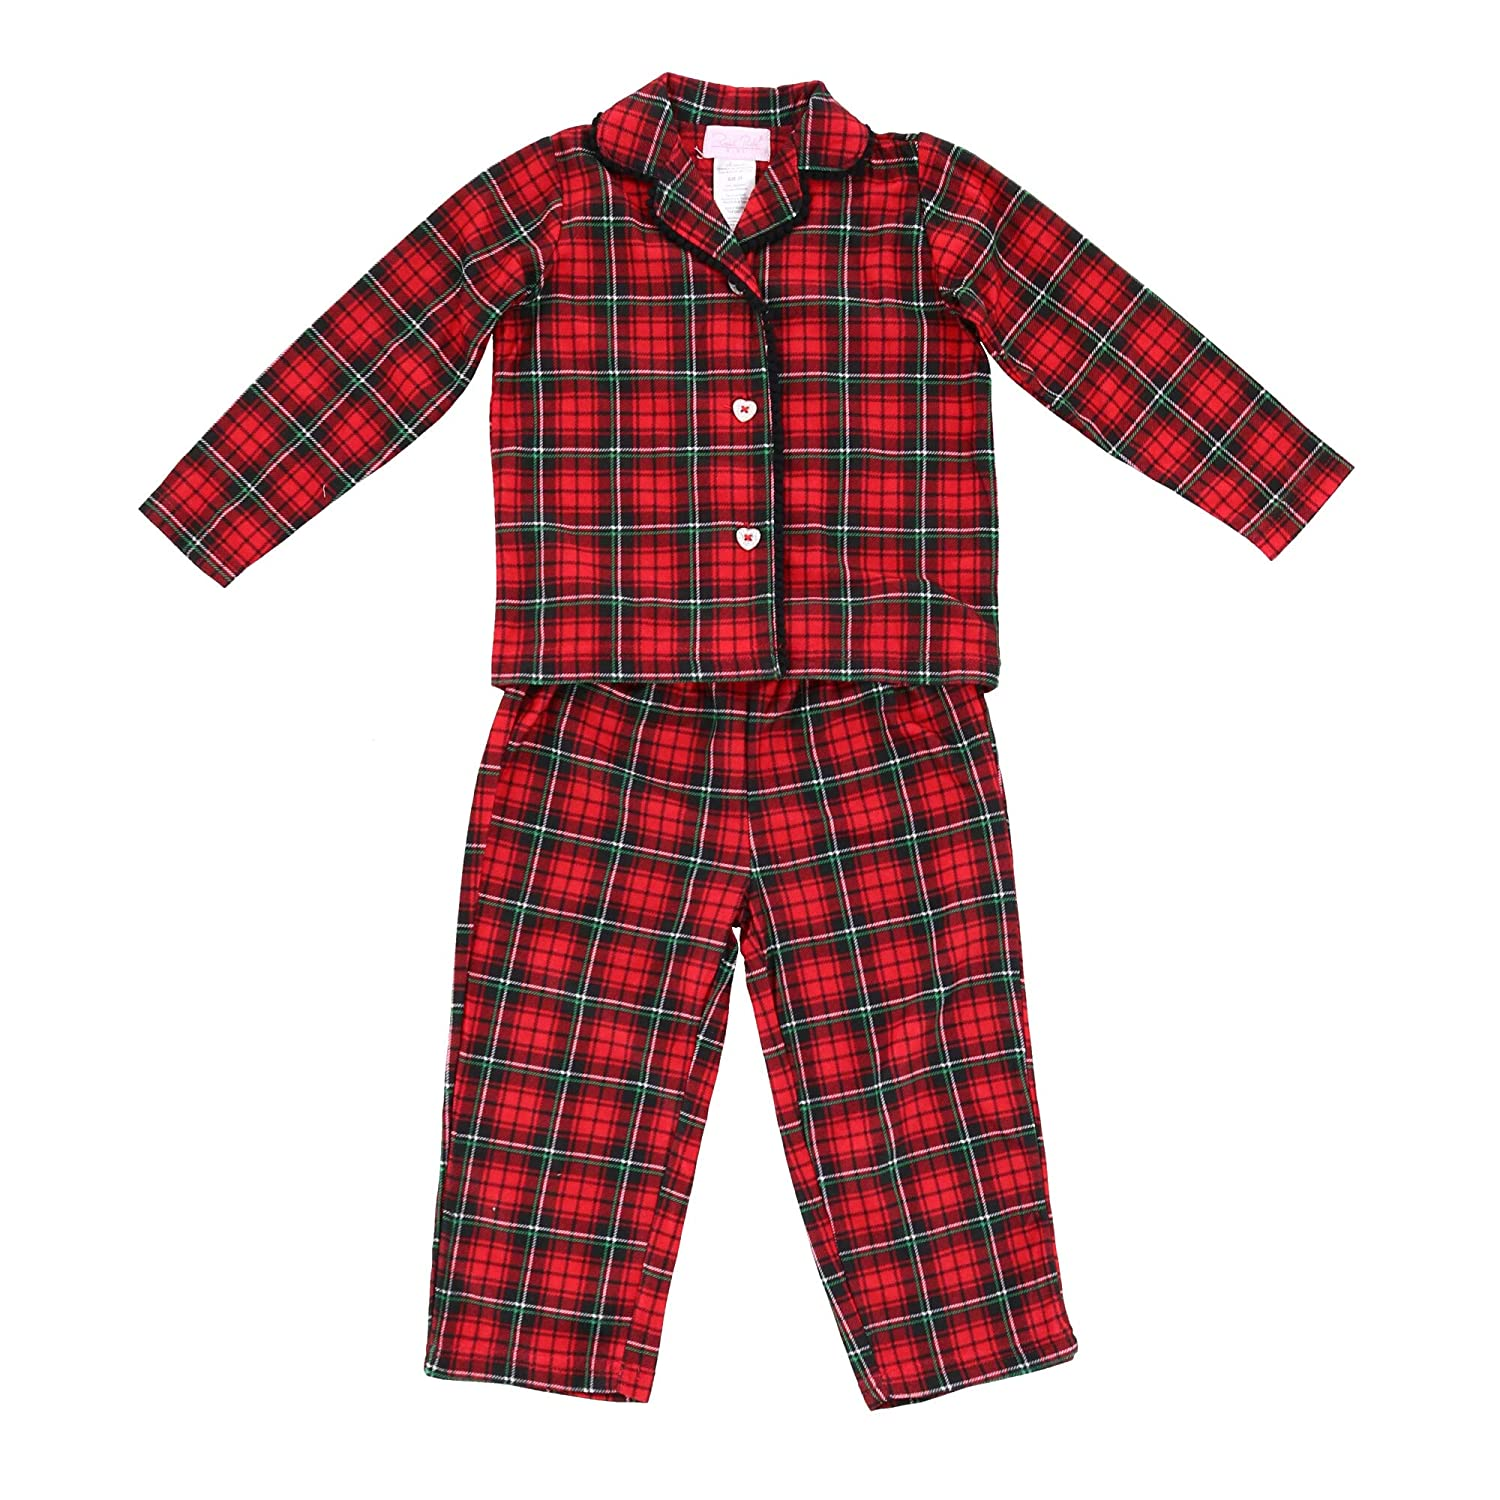 Rene Rofe Toddler Girl's Plaid Long Pajama Set with Button Down Top, 3T, Red